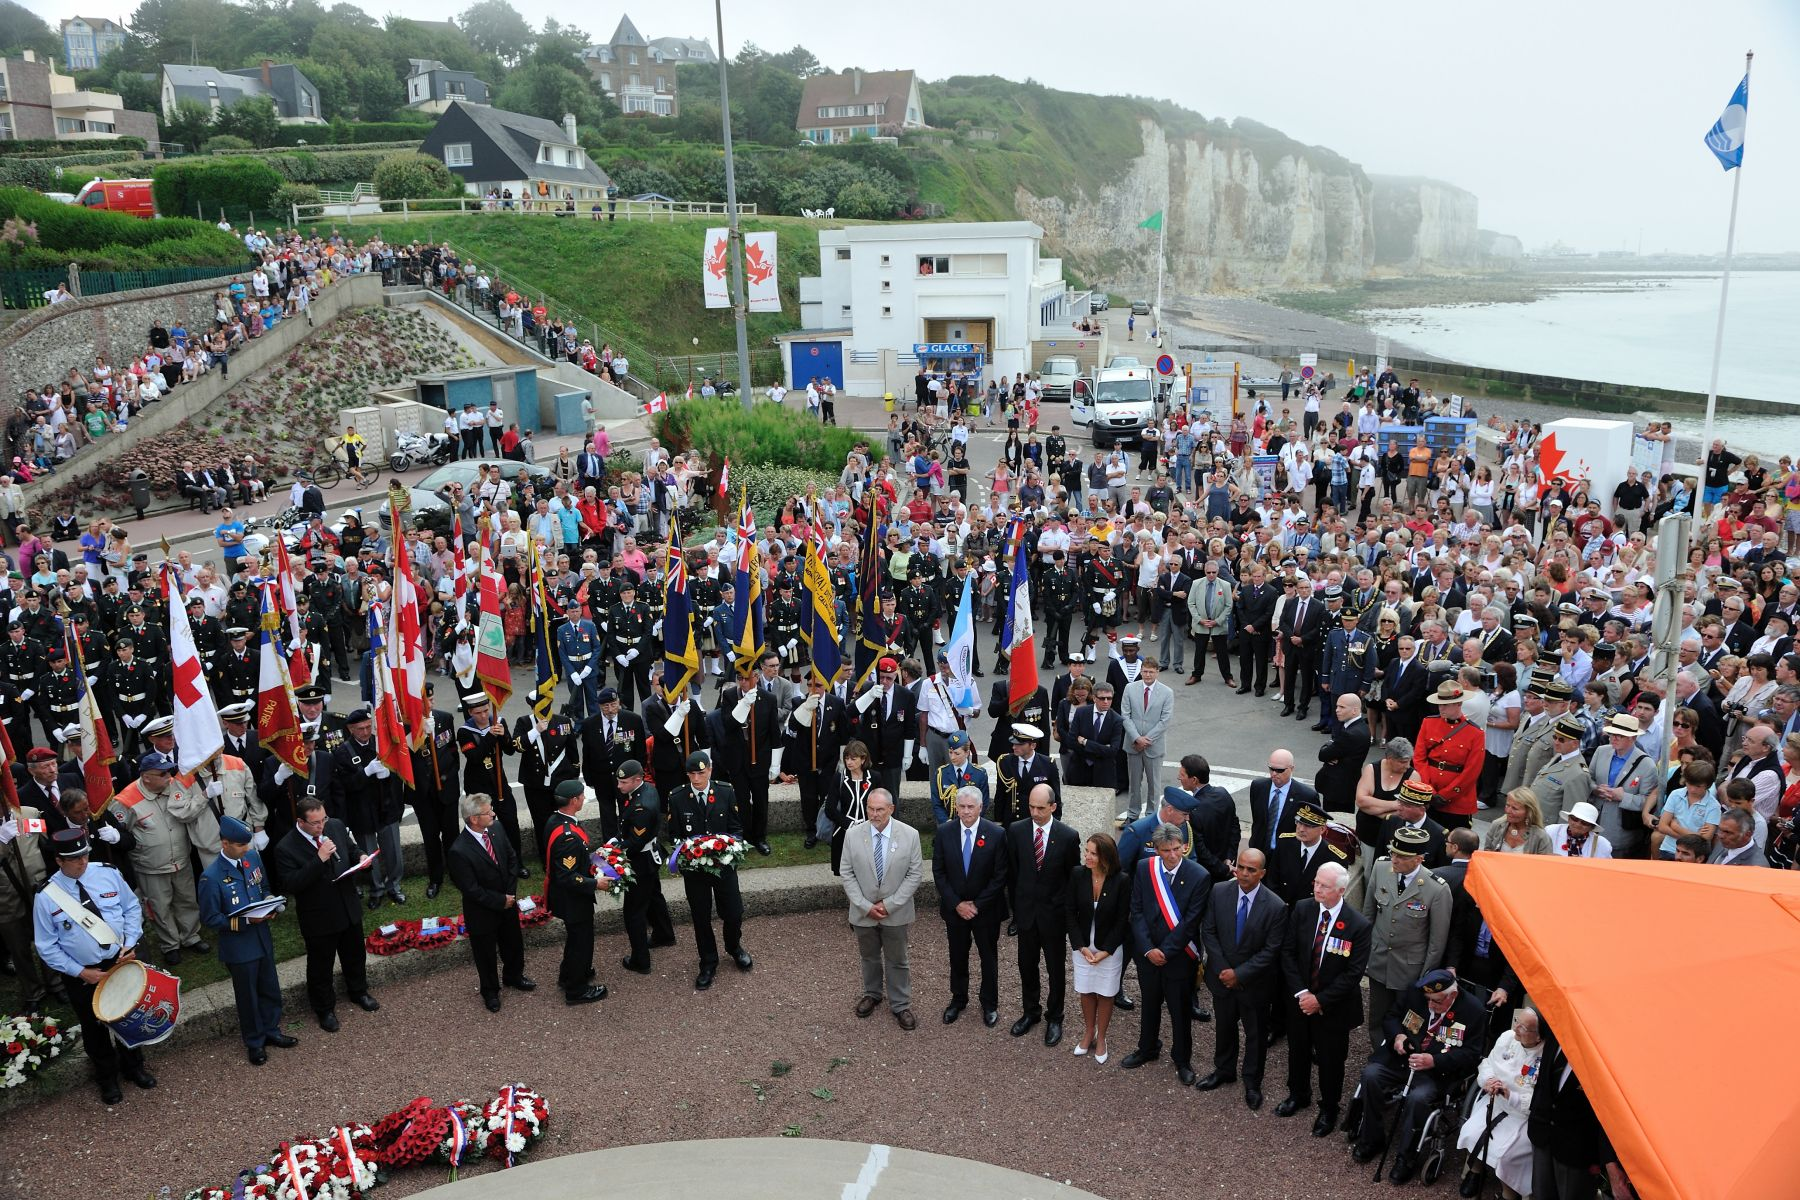 The Governor General laid a wreath at the Royal Regiment of Canada Monument on behalf of Canadians during a ceremony organized by the City of Dieppe to mark the 70th anniversary of the Raid. The Royal Regiment of Canada sustained the heaviest losses in a single day of any other regiment during the Second World War.